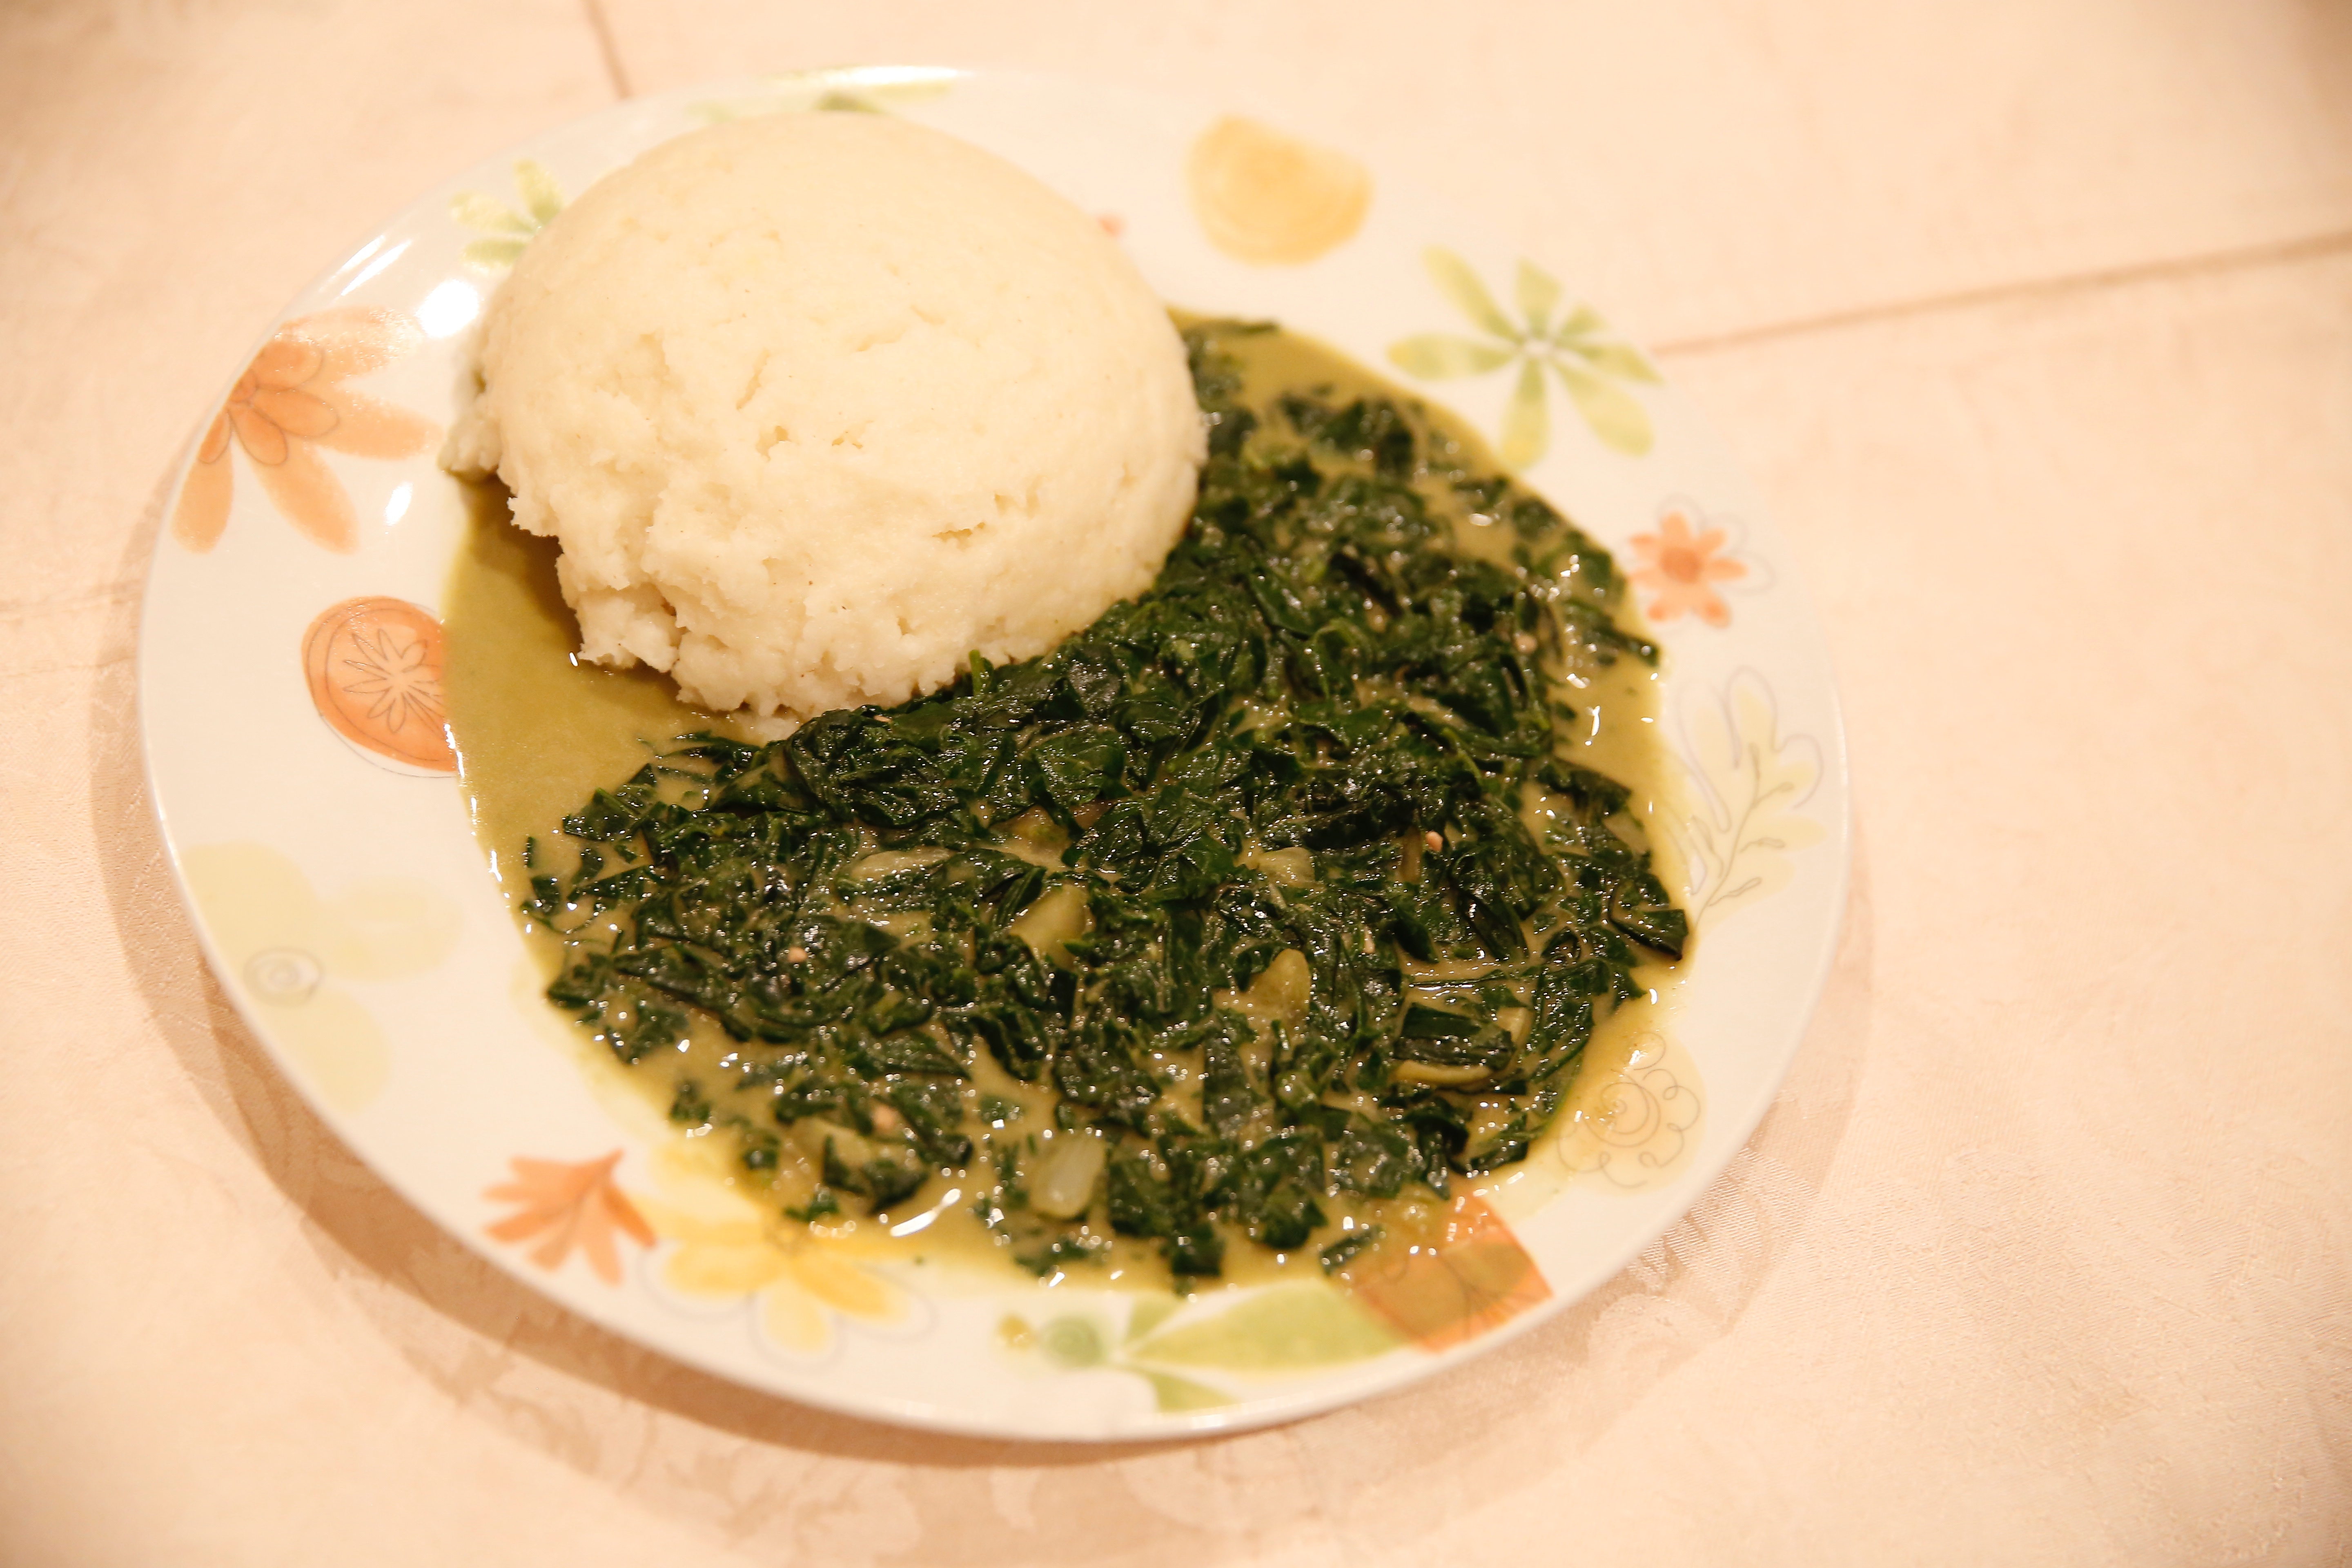 Nyete with peanut butter, served with Asida